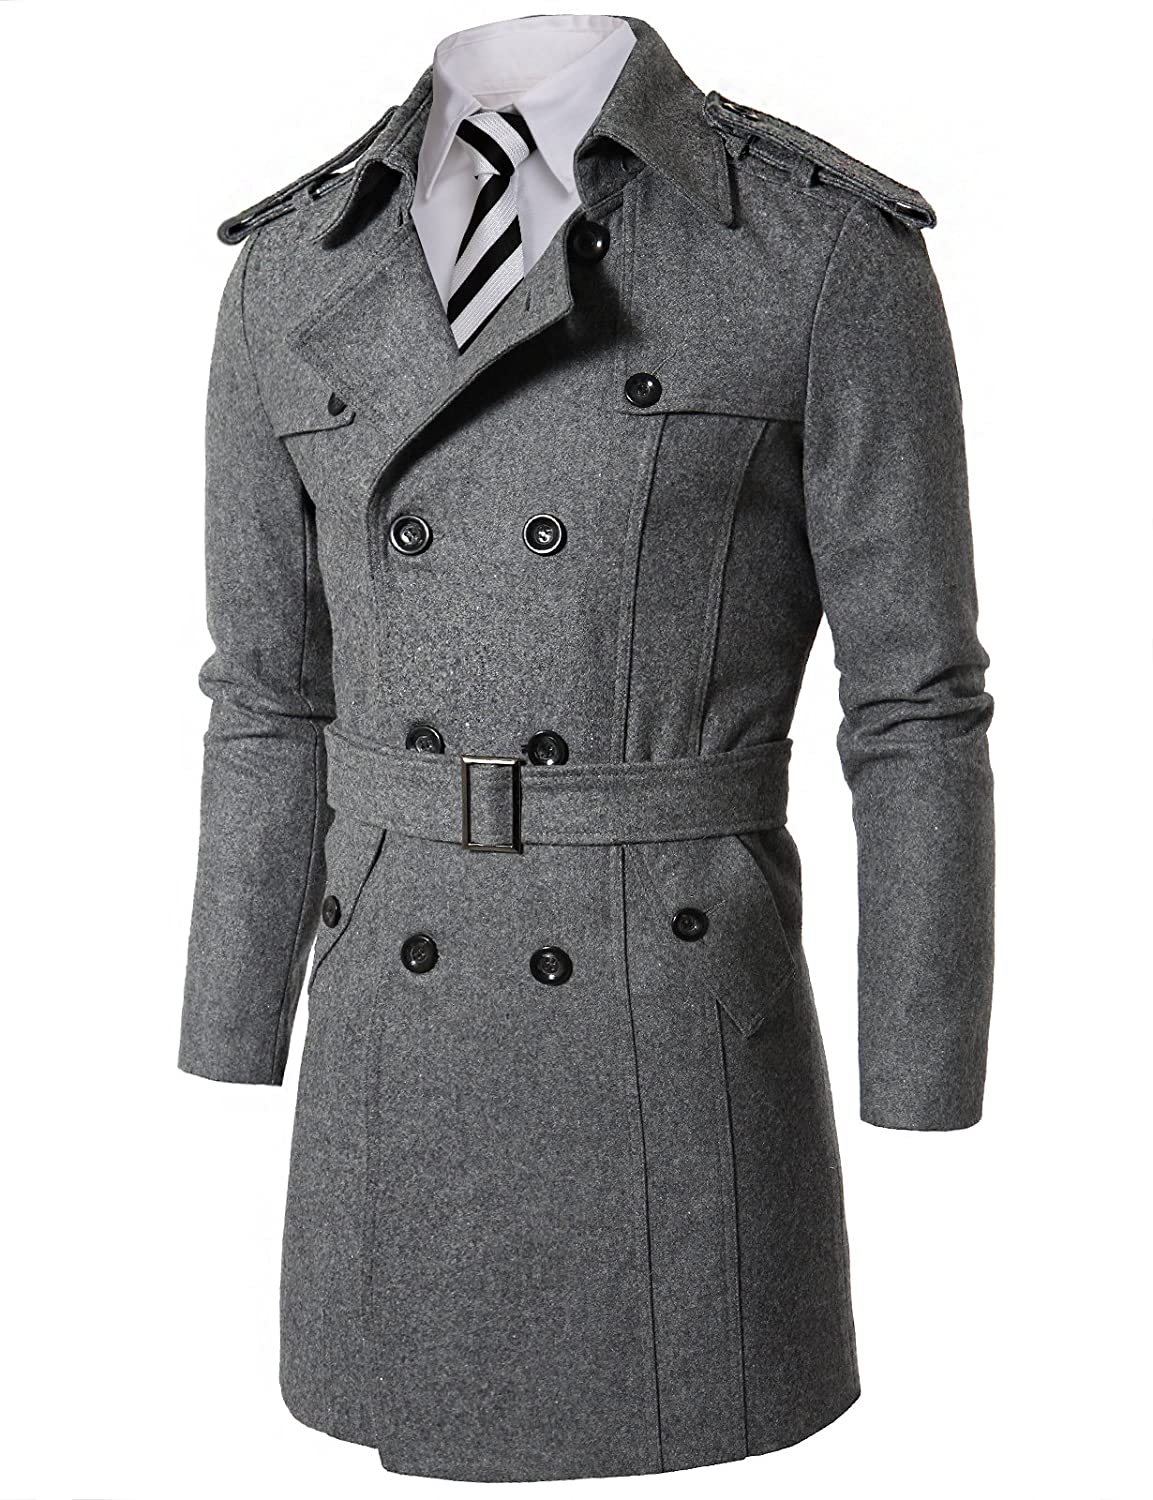 Doublju Mens Wool Coat with Belt GRAY (US-S) at Amazon Men's ...